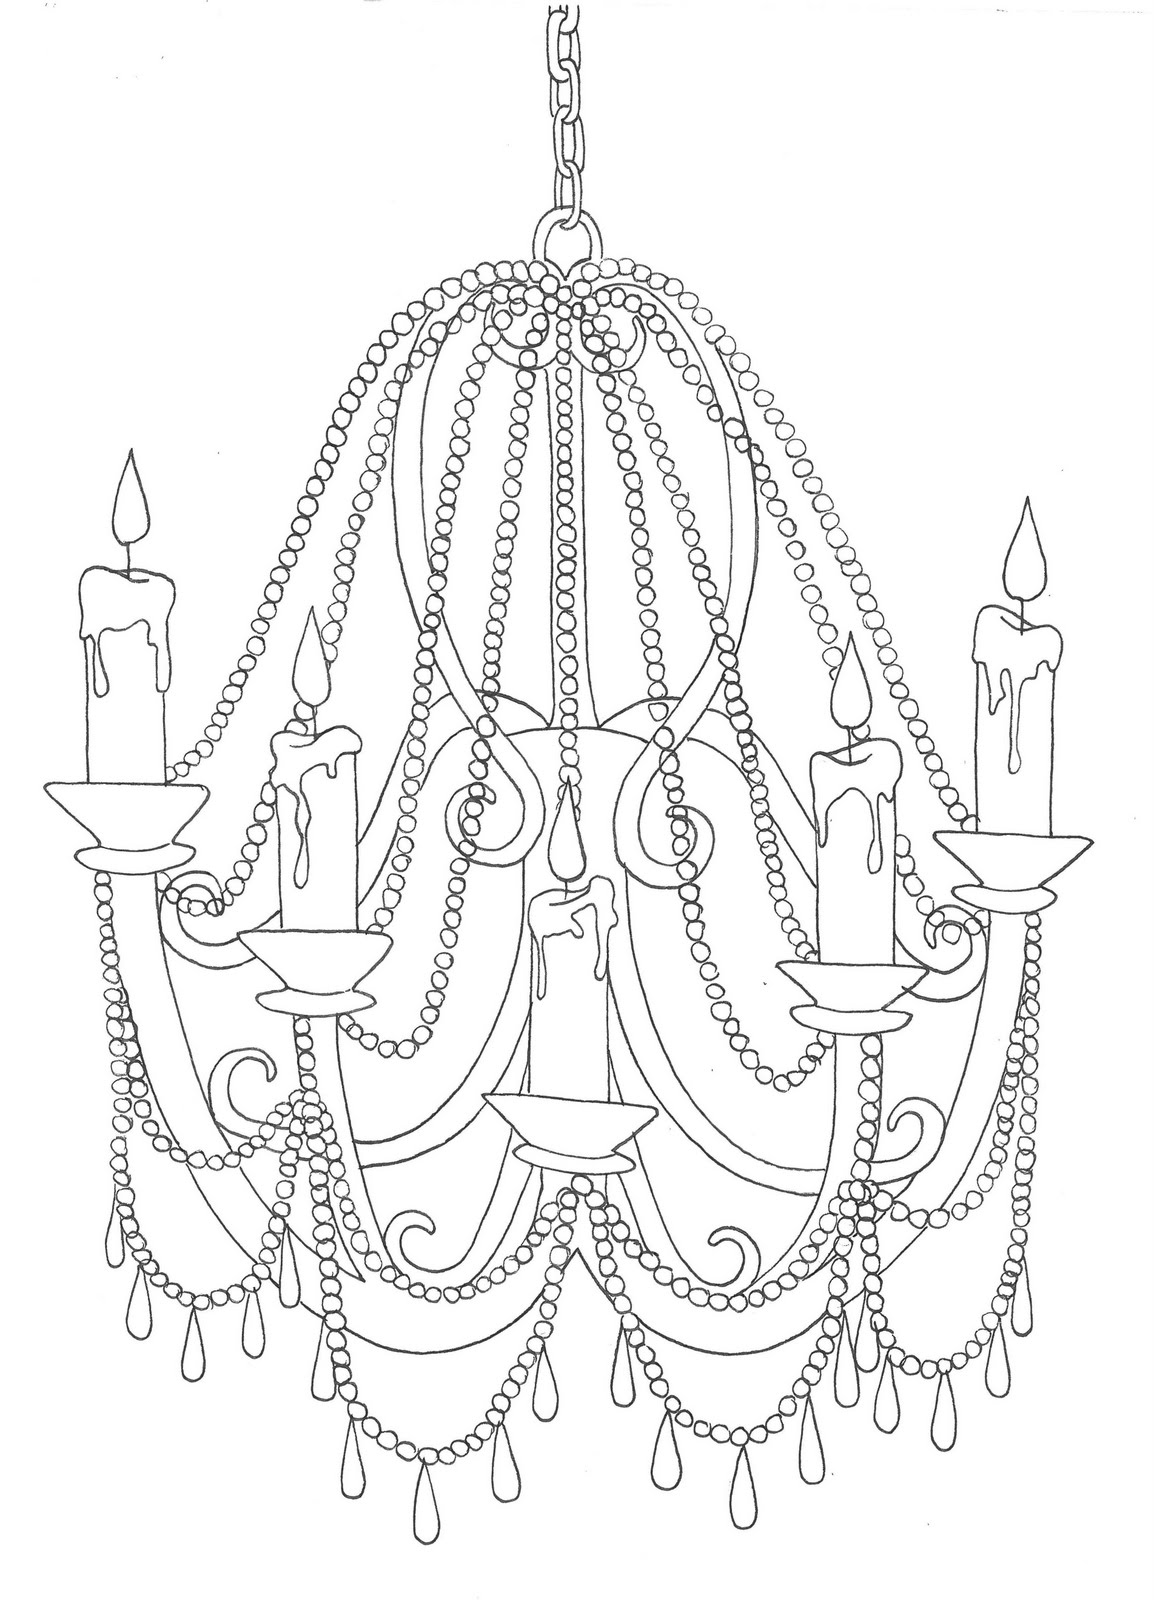 chandelier line drawing at getdrawings com